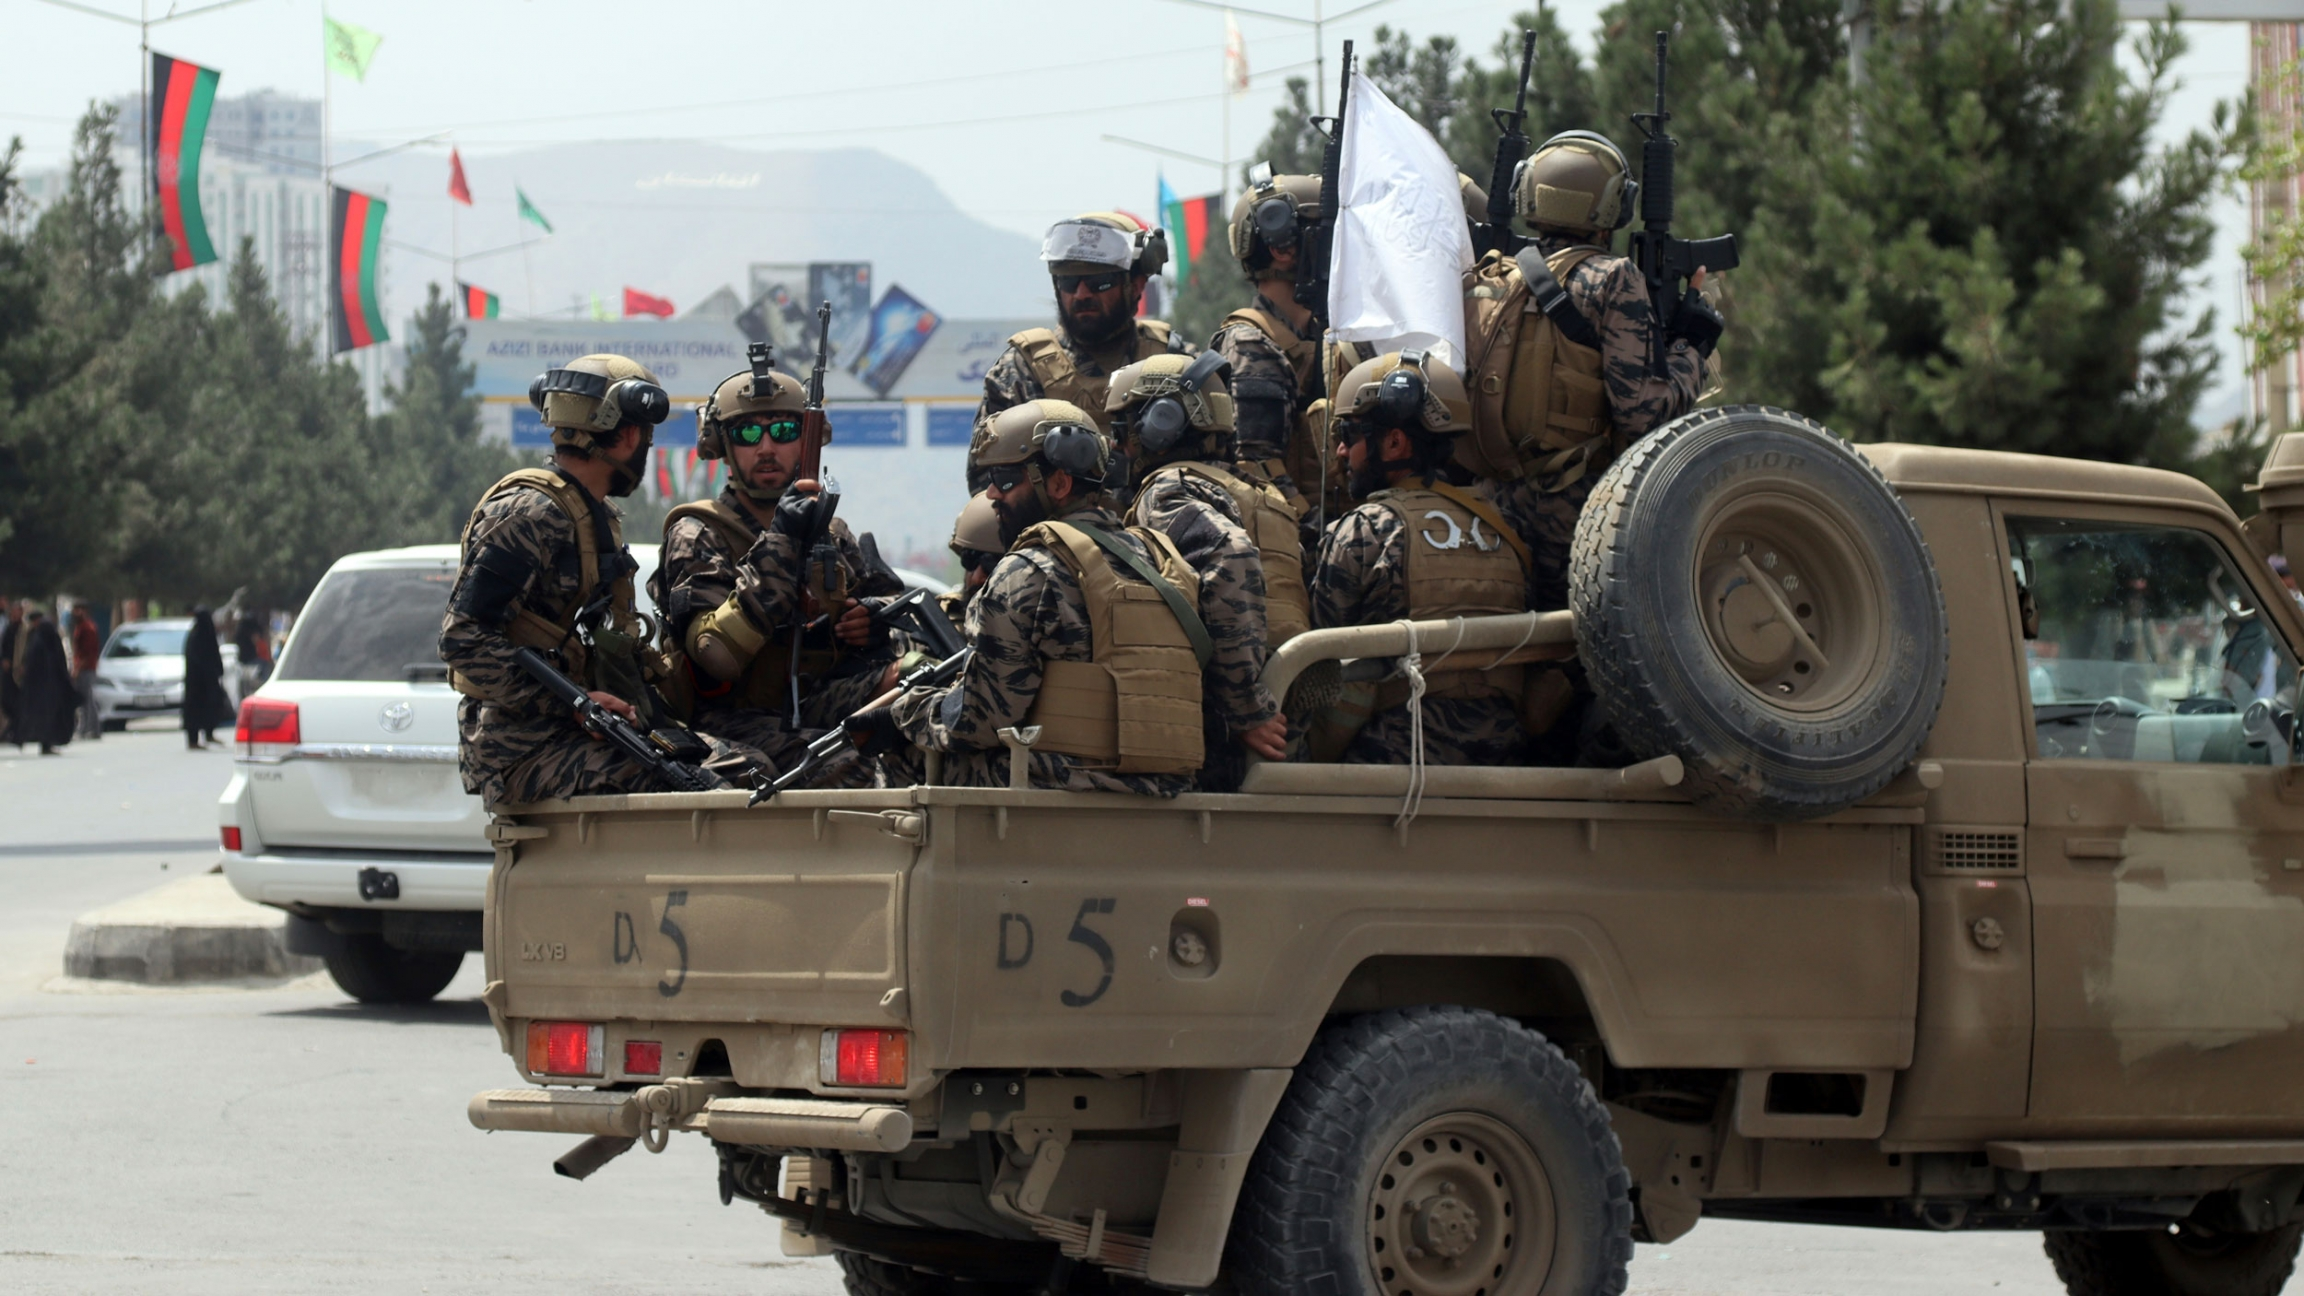 Taliban special force fighters arrive inside the Hamid Karzai International Airport after the US military's withdrawal, in Kabul, Afghanistan, Tuesday, Aug. 31, 2021.